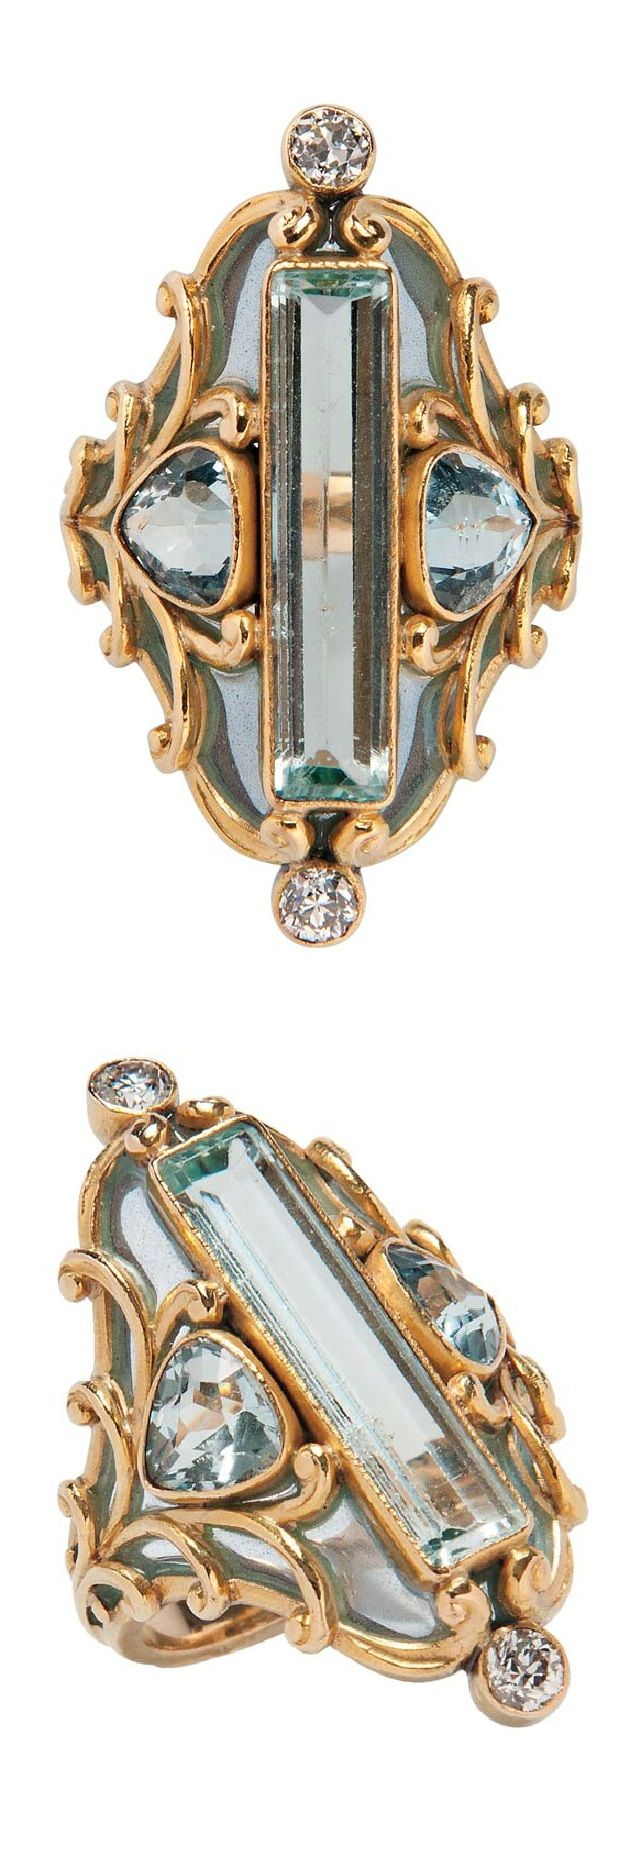 Marcus & Co. - An Art Nouveau 18kt Gold, Aquamarine, and Plique-à-Jour Enamel Ring. Centring a long, bezel-set, rectangular-cut aquamarine in a plique-à-jour enamel mount with aquamarines and old European-cut diamonds, signed.